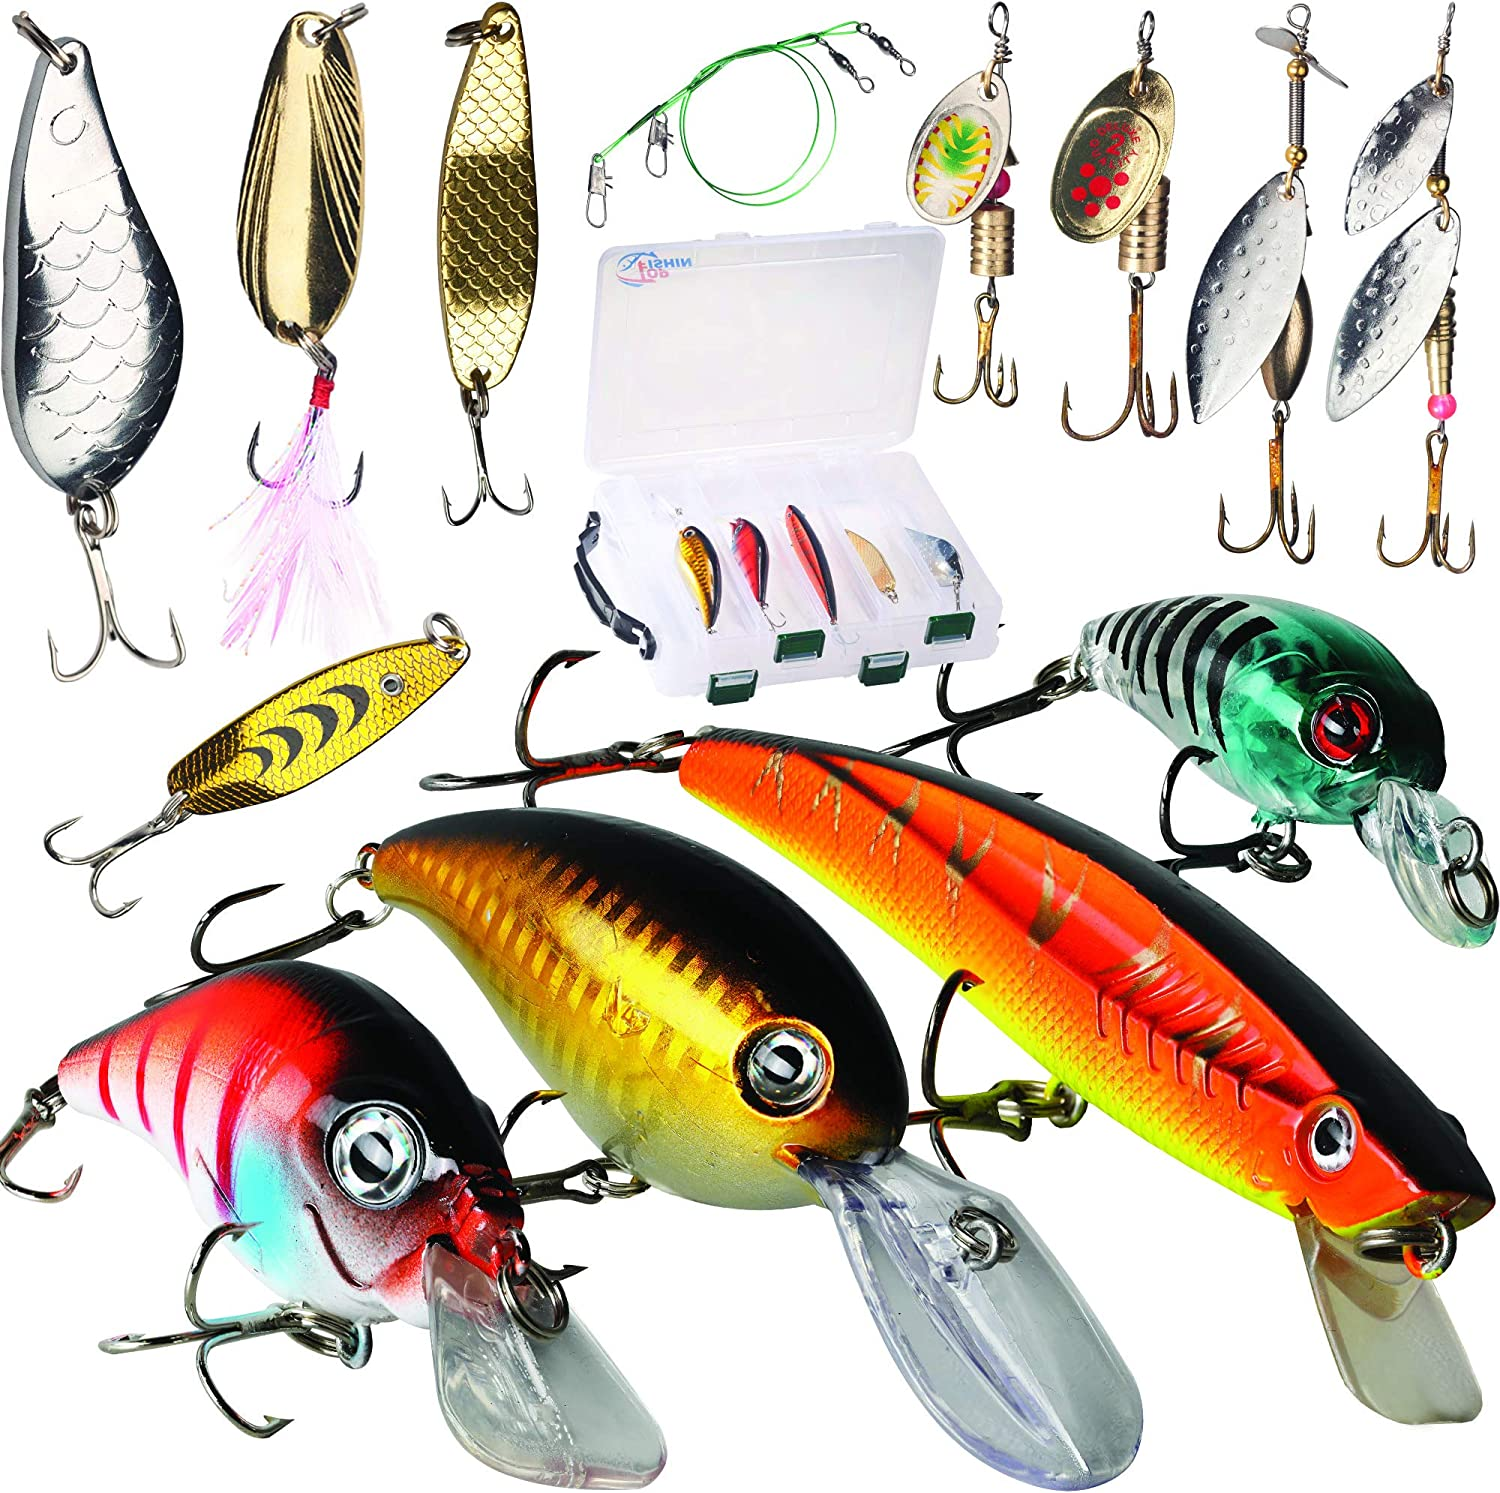 gift idea Fishing spoon lure set bass tackle spinner bait pike lure box